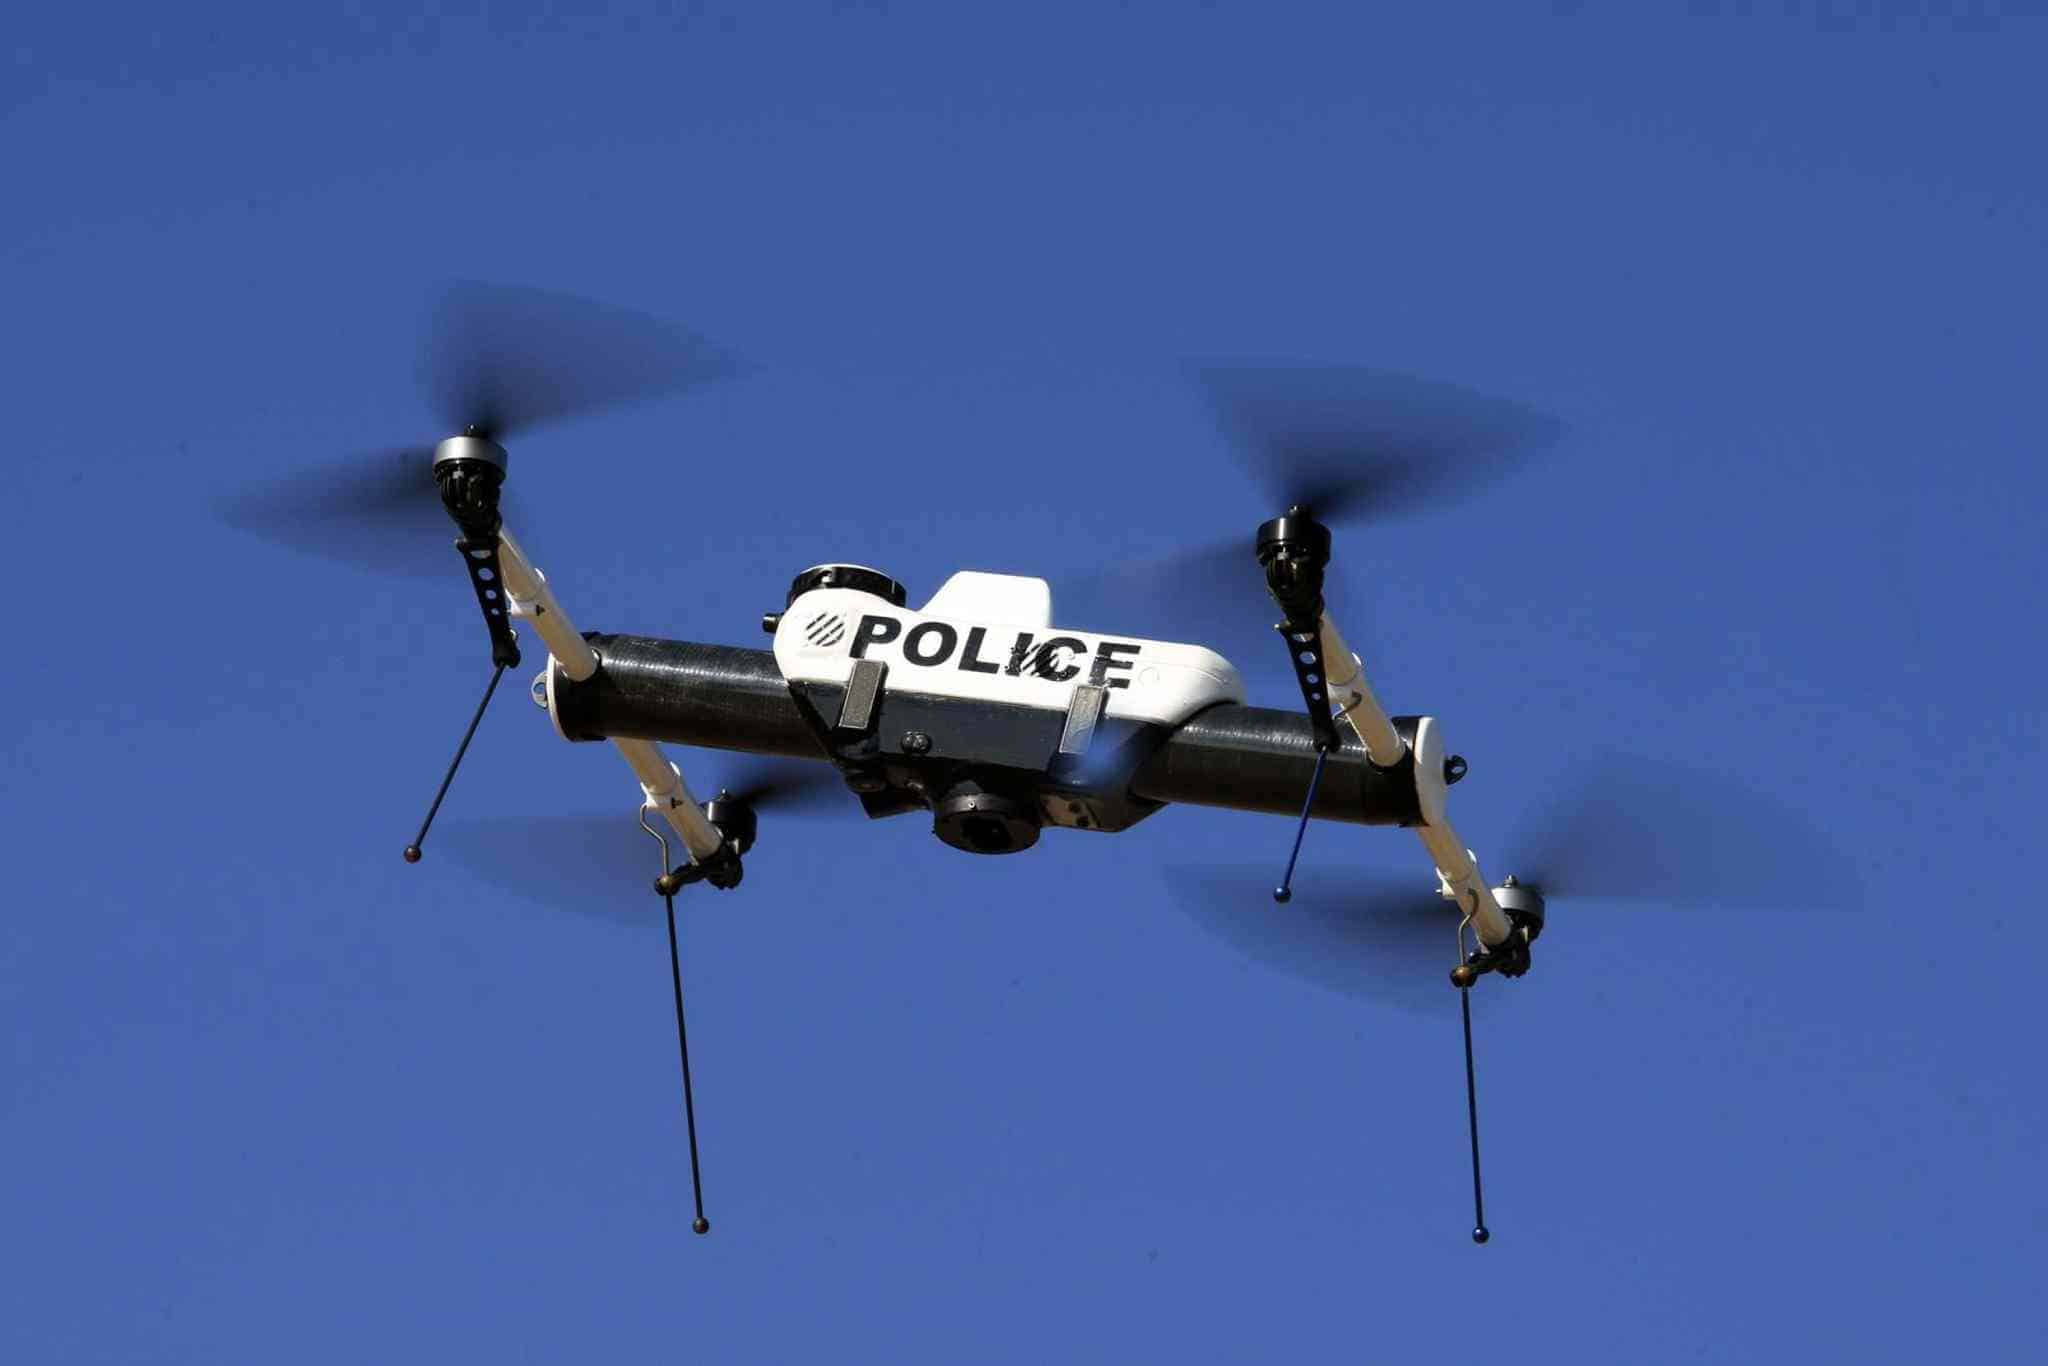 Traffic violation being monitored by drones in China